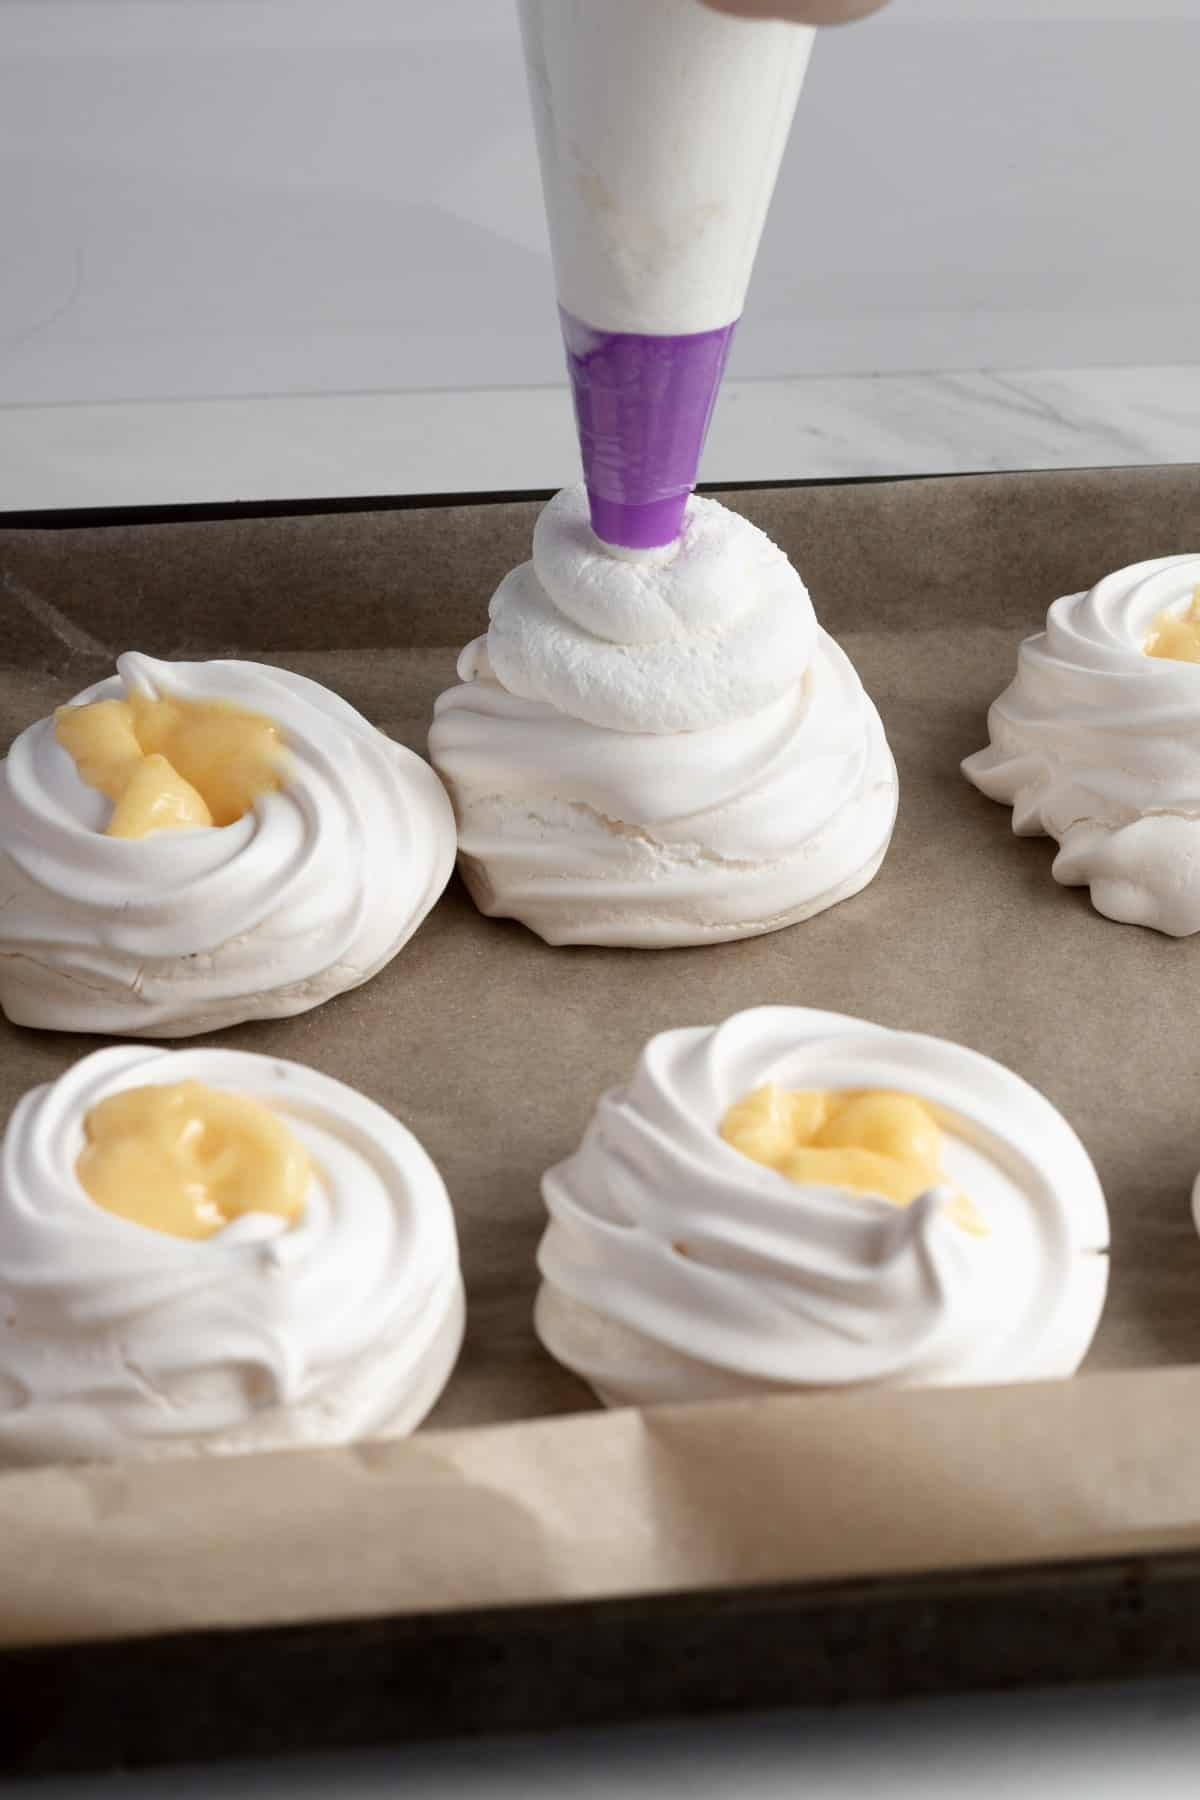 Piping whipped cream on top of a lemon curd filled pavlova